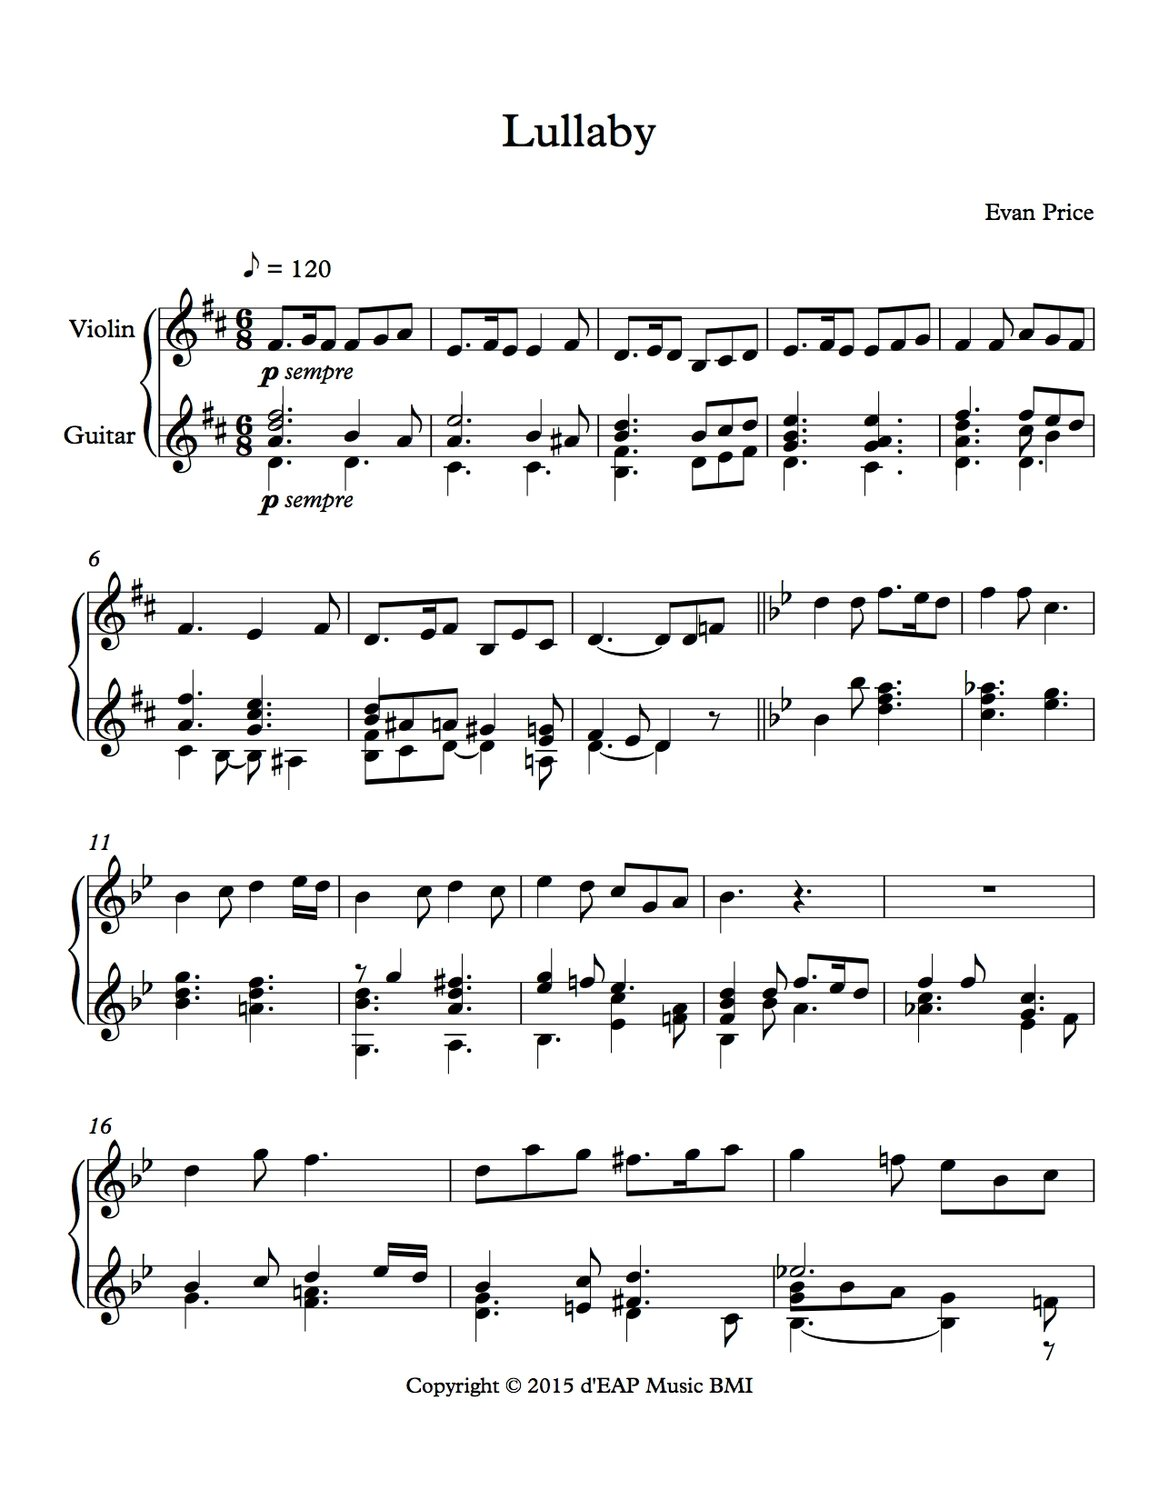 Lullaby for violin and guitar (pdf)